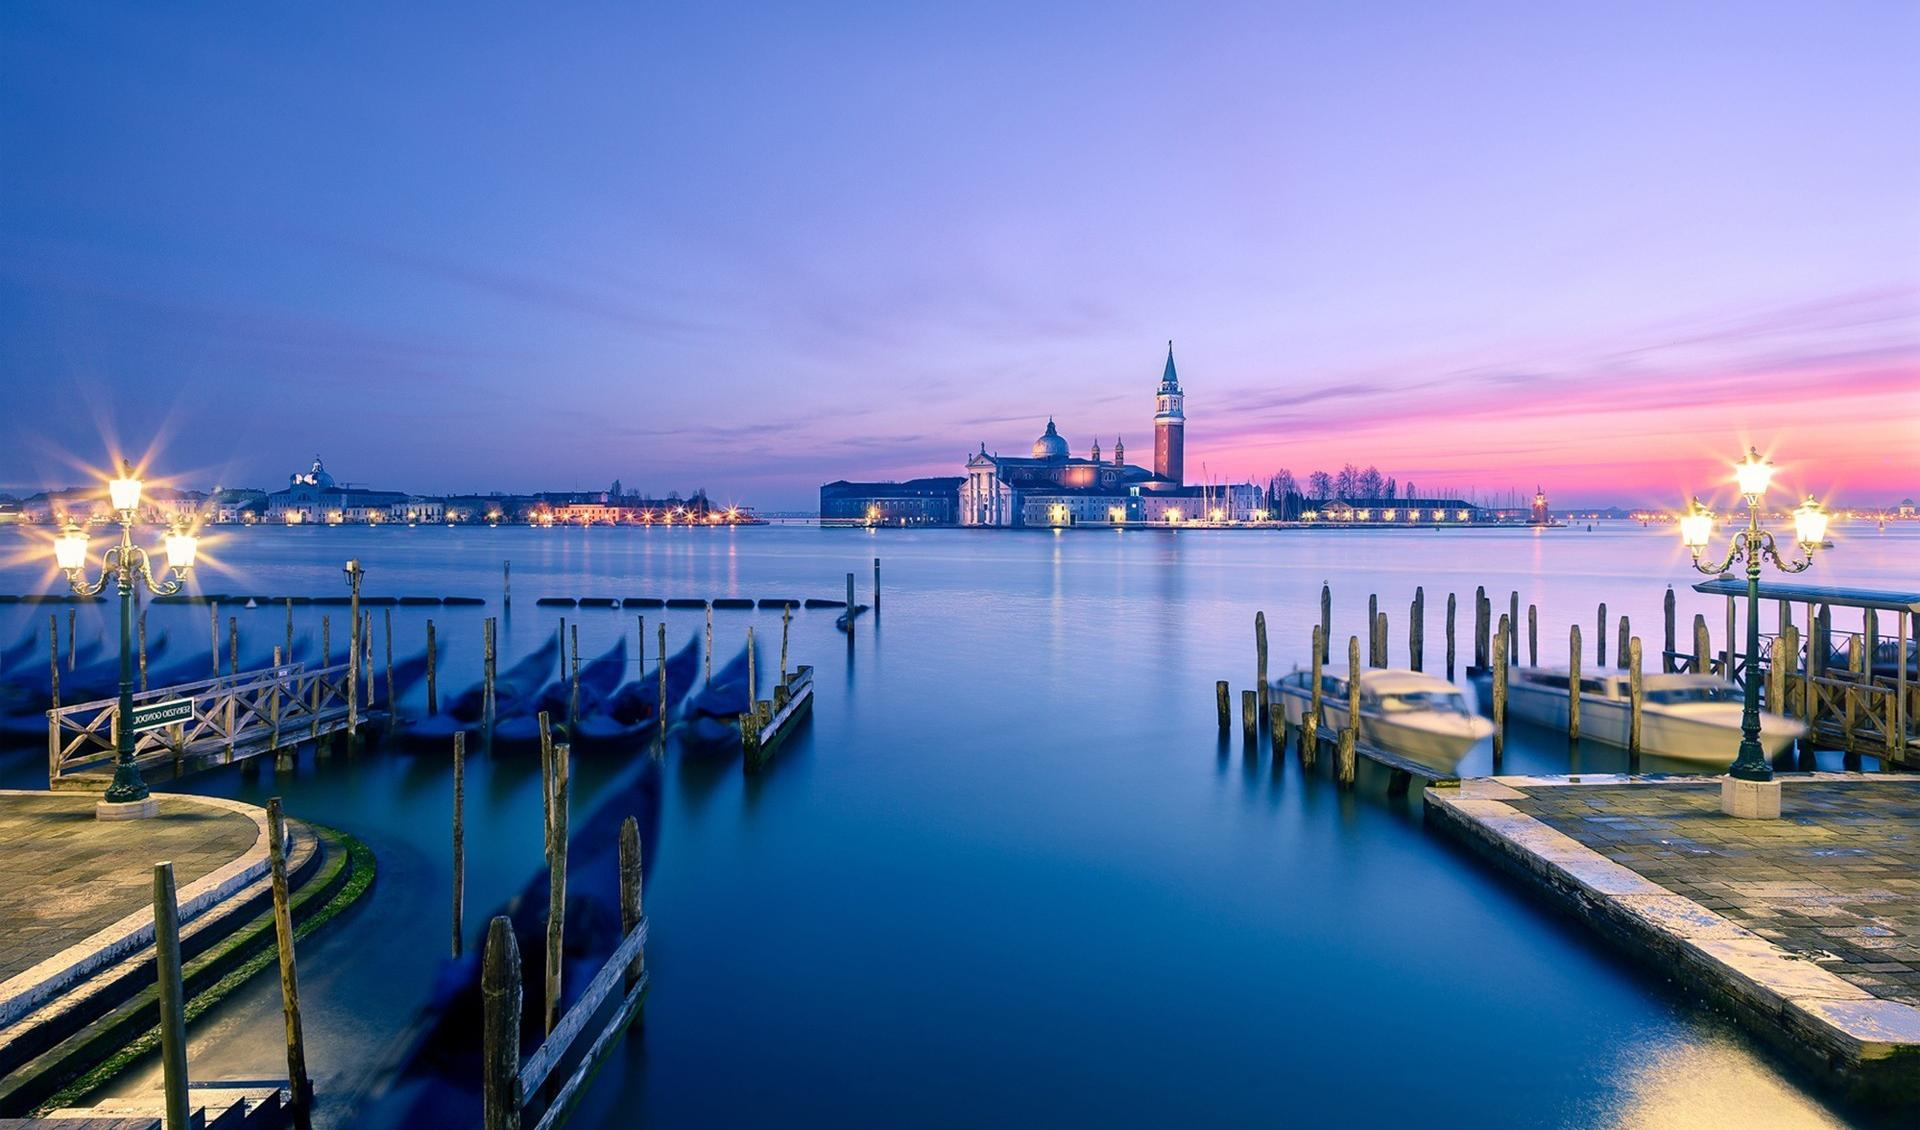 Venice, Italy wallpapers HD quality